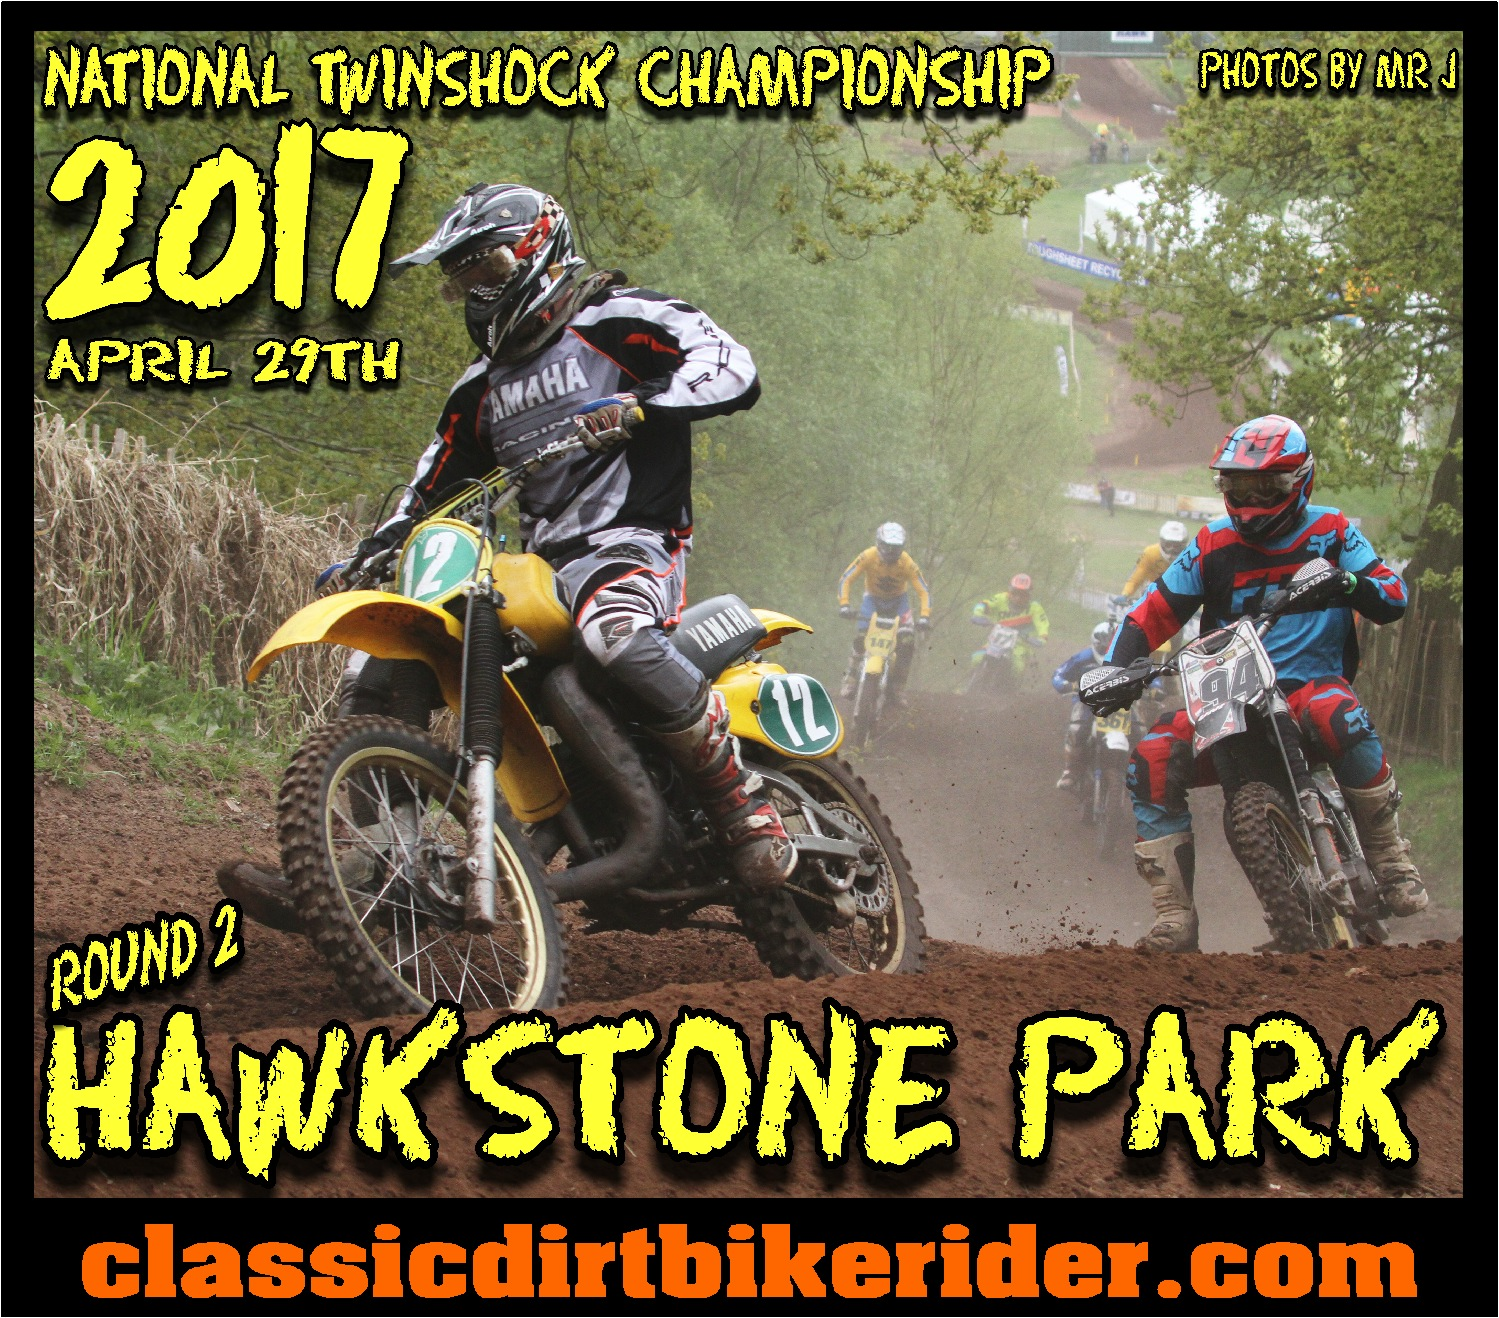 national-twinshock-motocross-championship-april-29th-2017-round-2-hawkstone-park-classicdirtbikerider-com